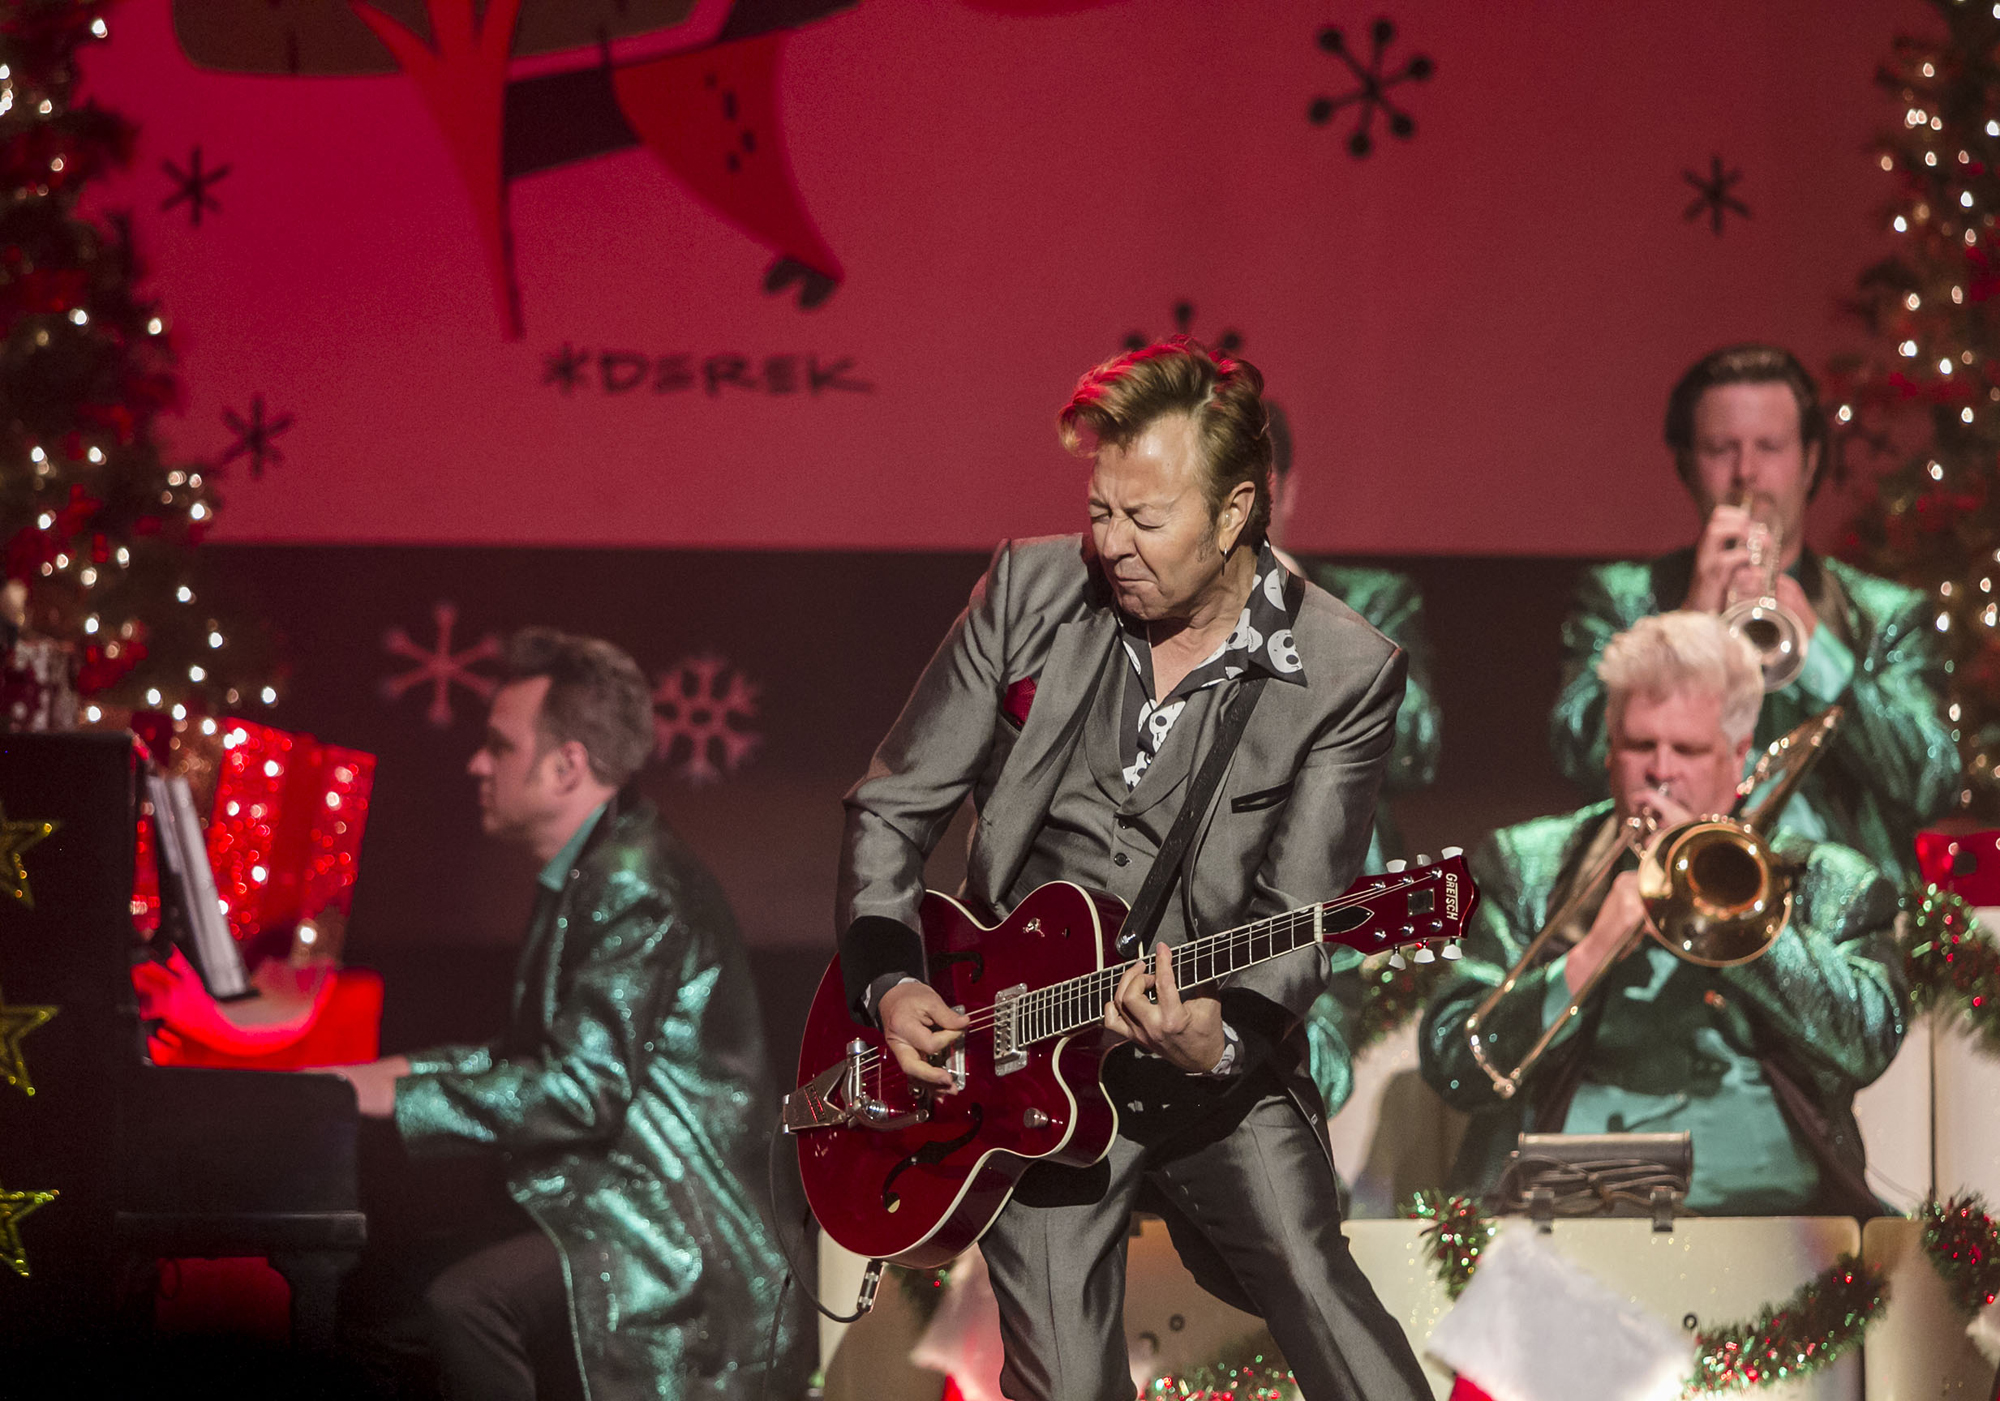 Concert Review Brian Setzer Rocked Christmas Tunes Like